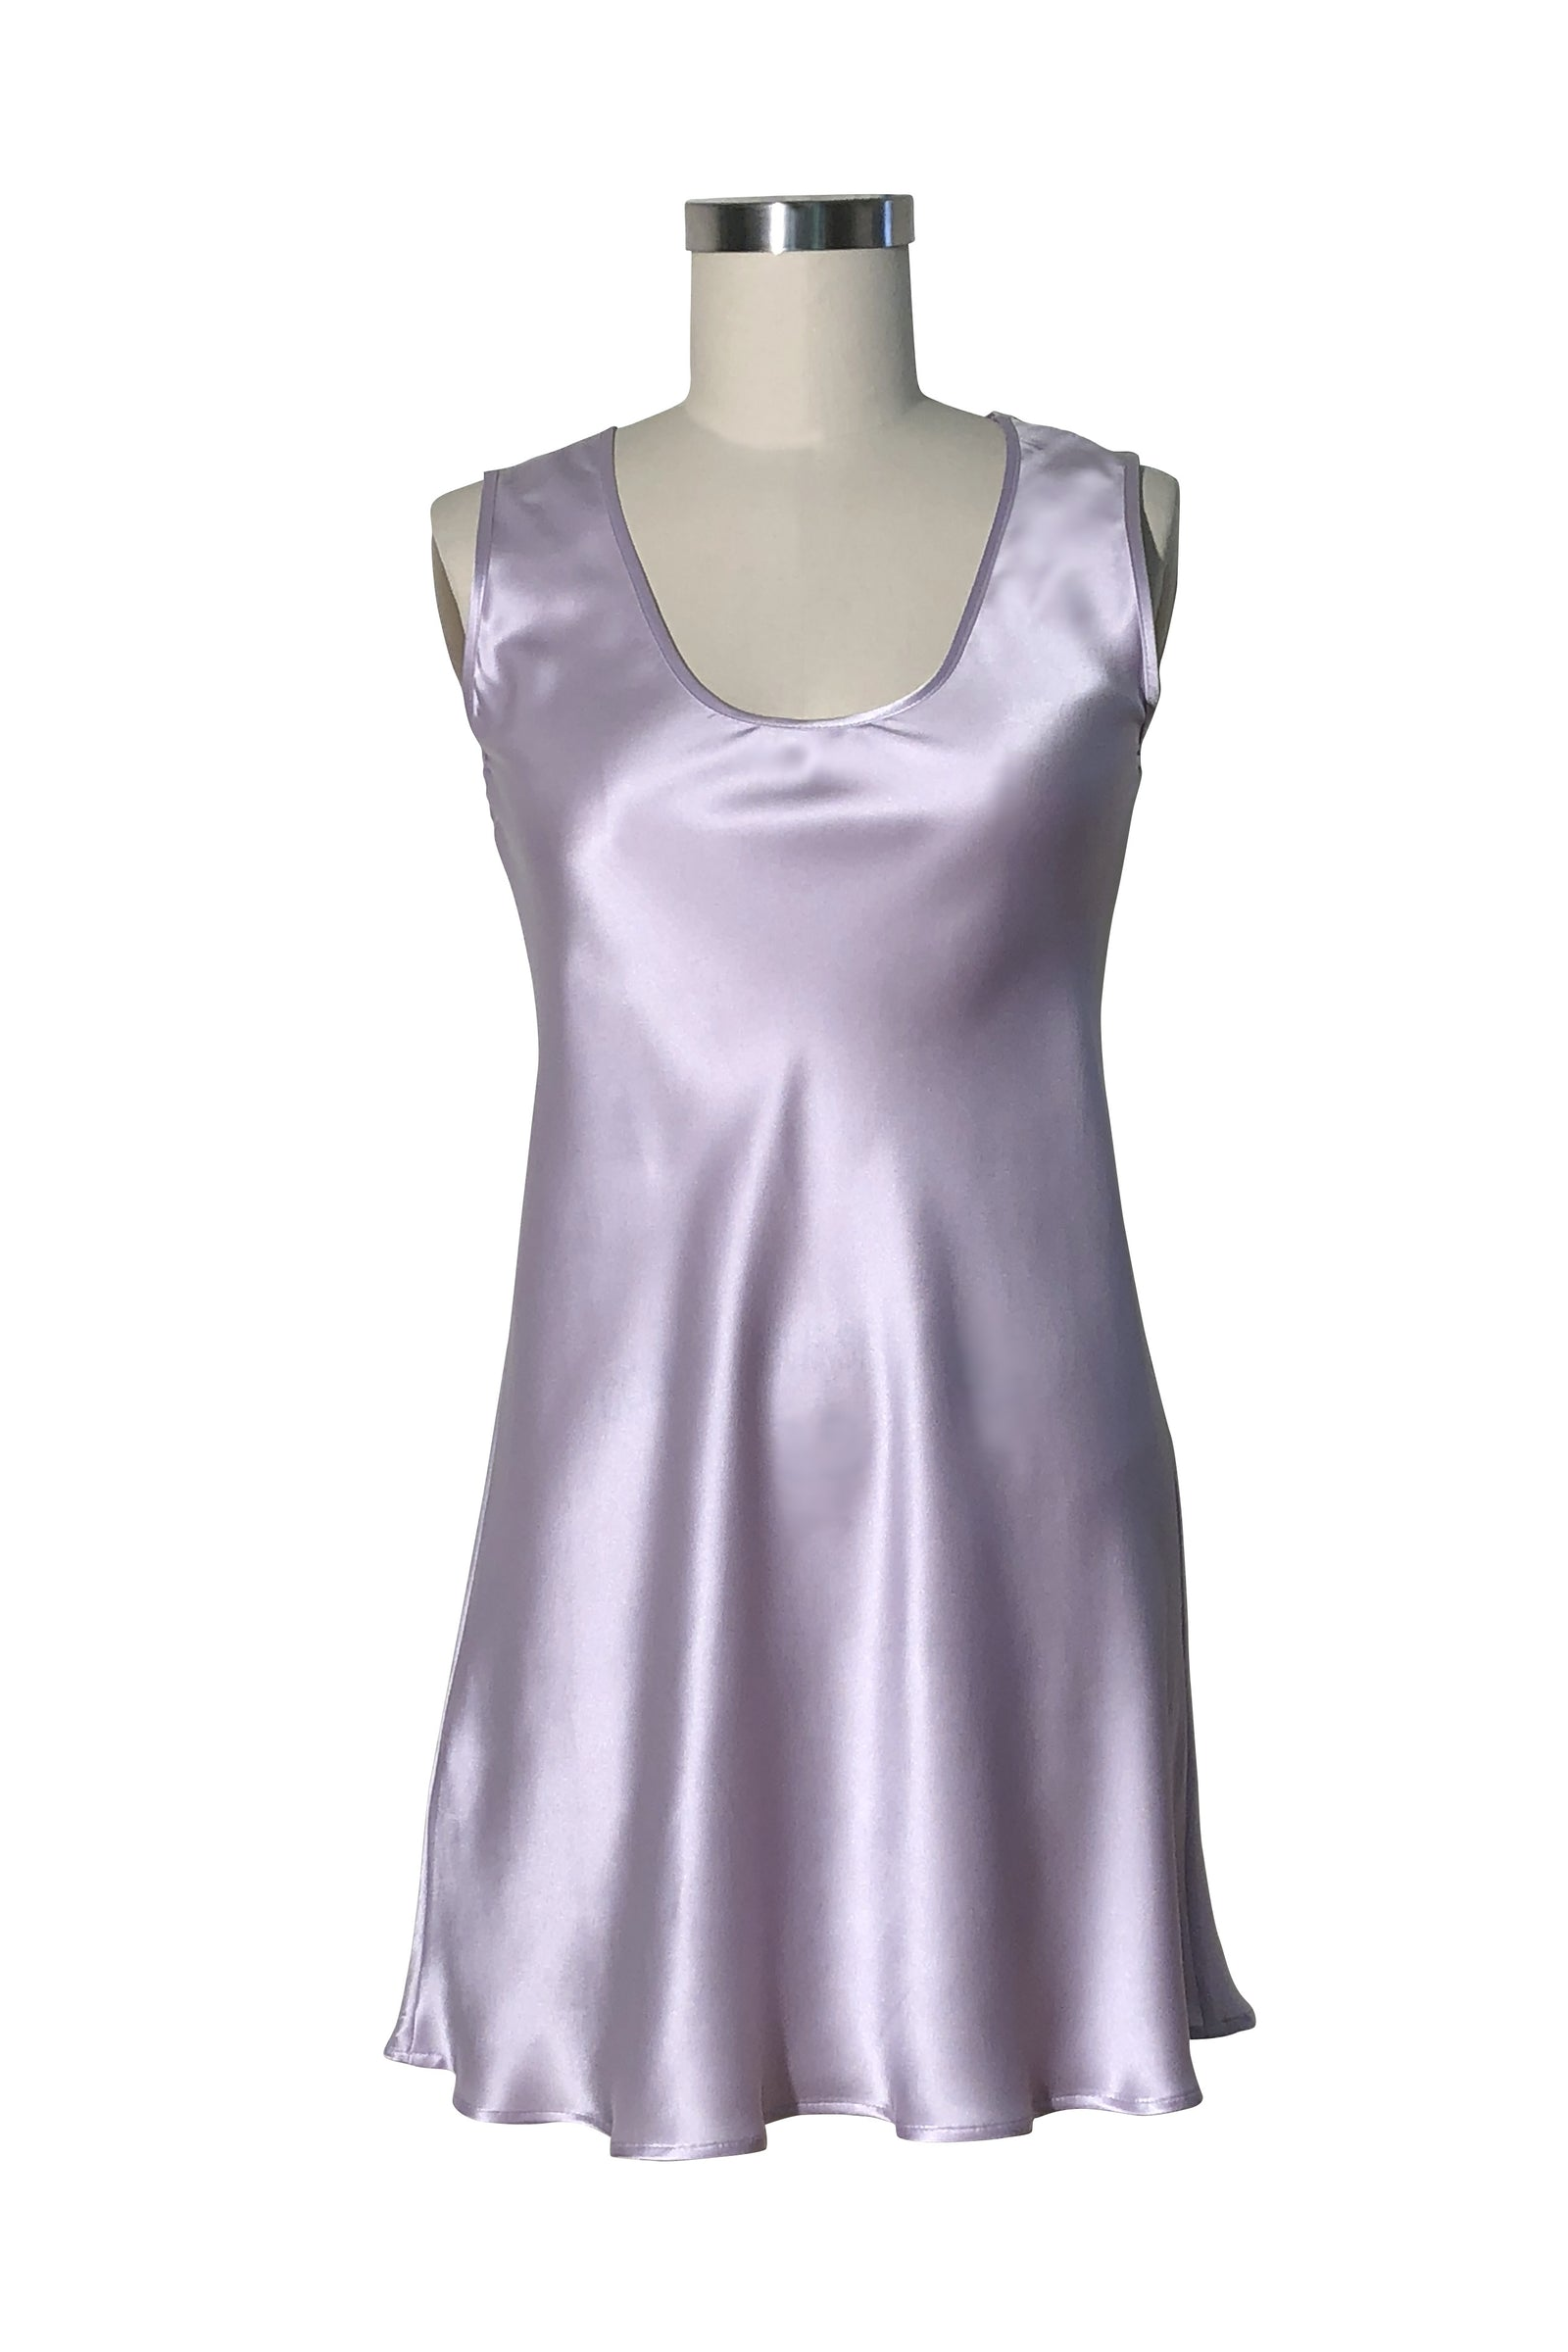 Orchid silk satin Millie front view